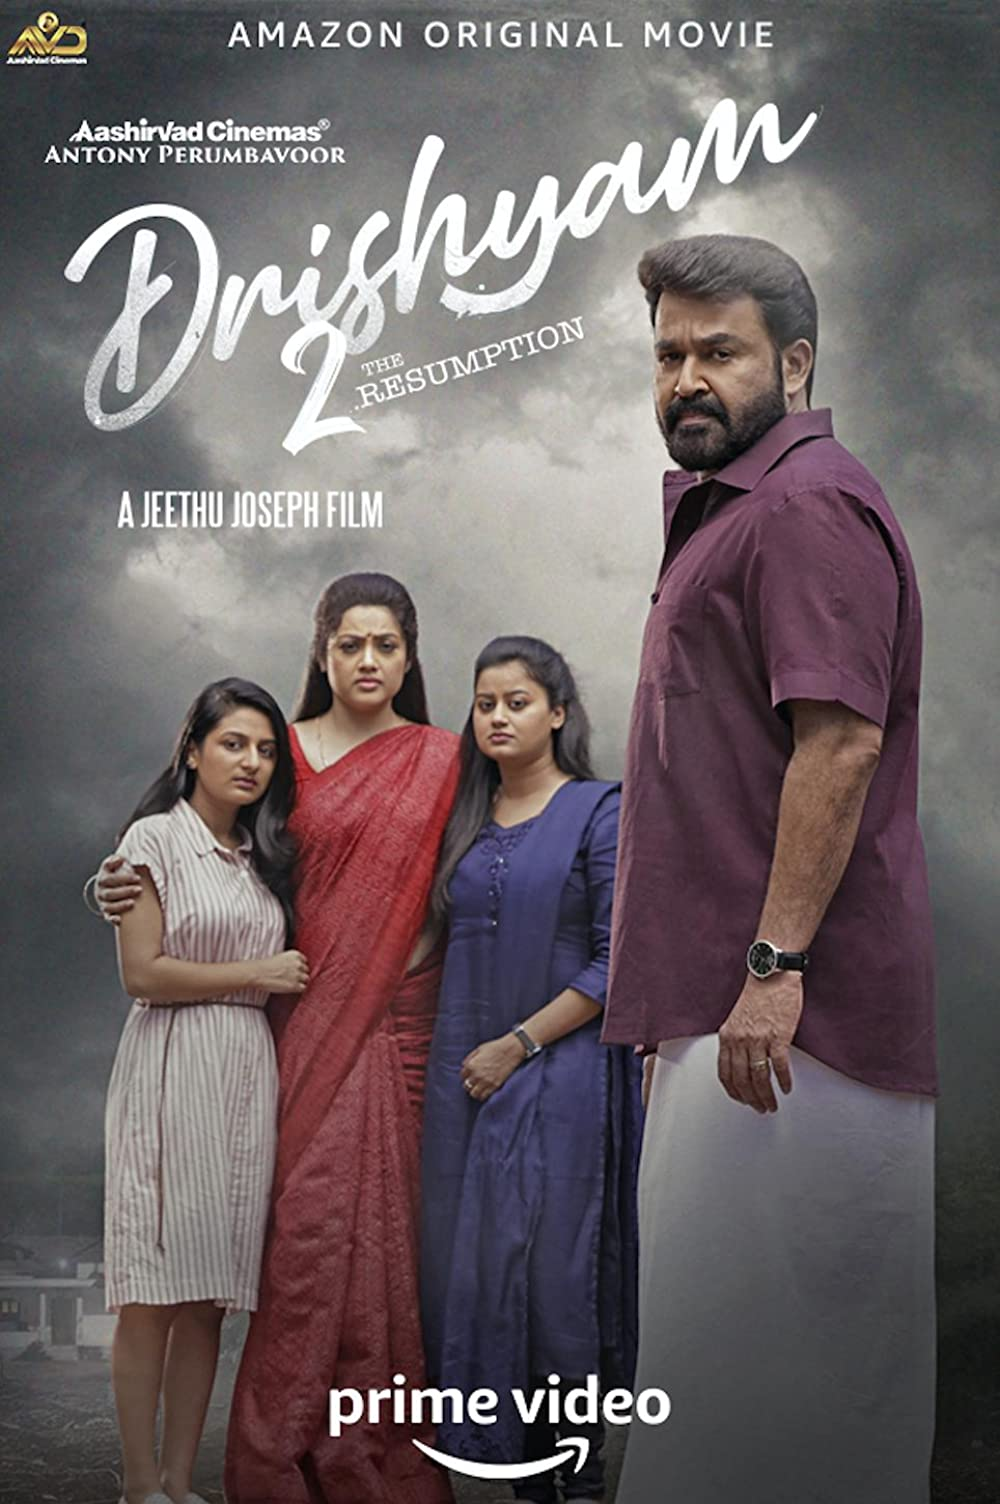 Drishyam 2 (2021) Malayalam Amazon Original Movie 720p HDRip 1GB ESub x264 AAC